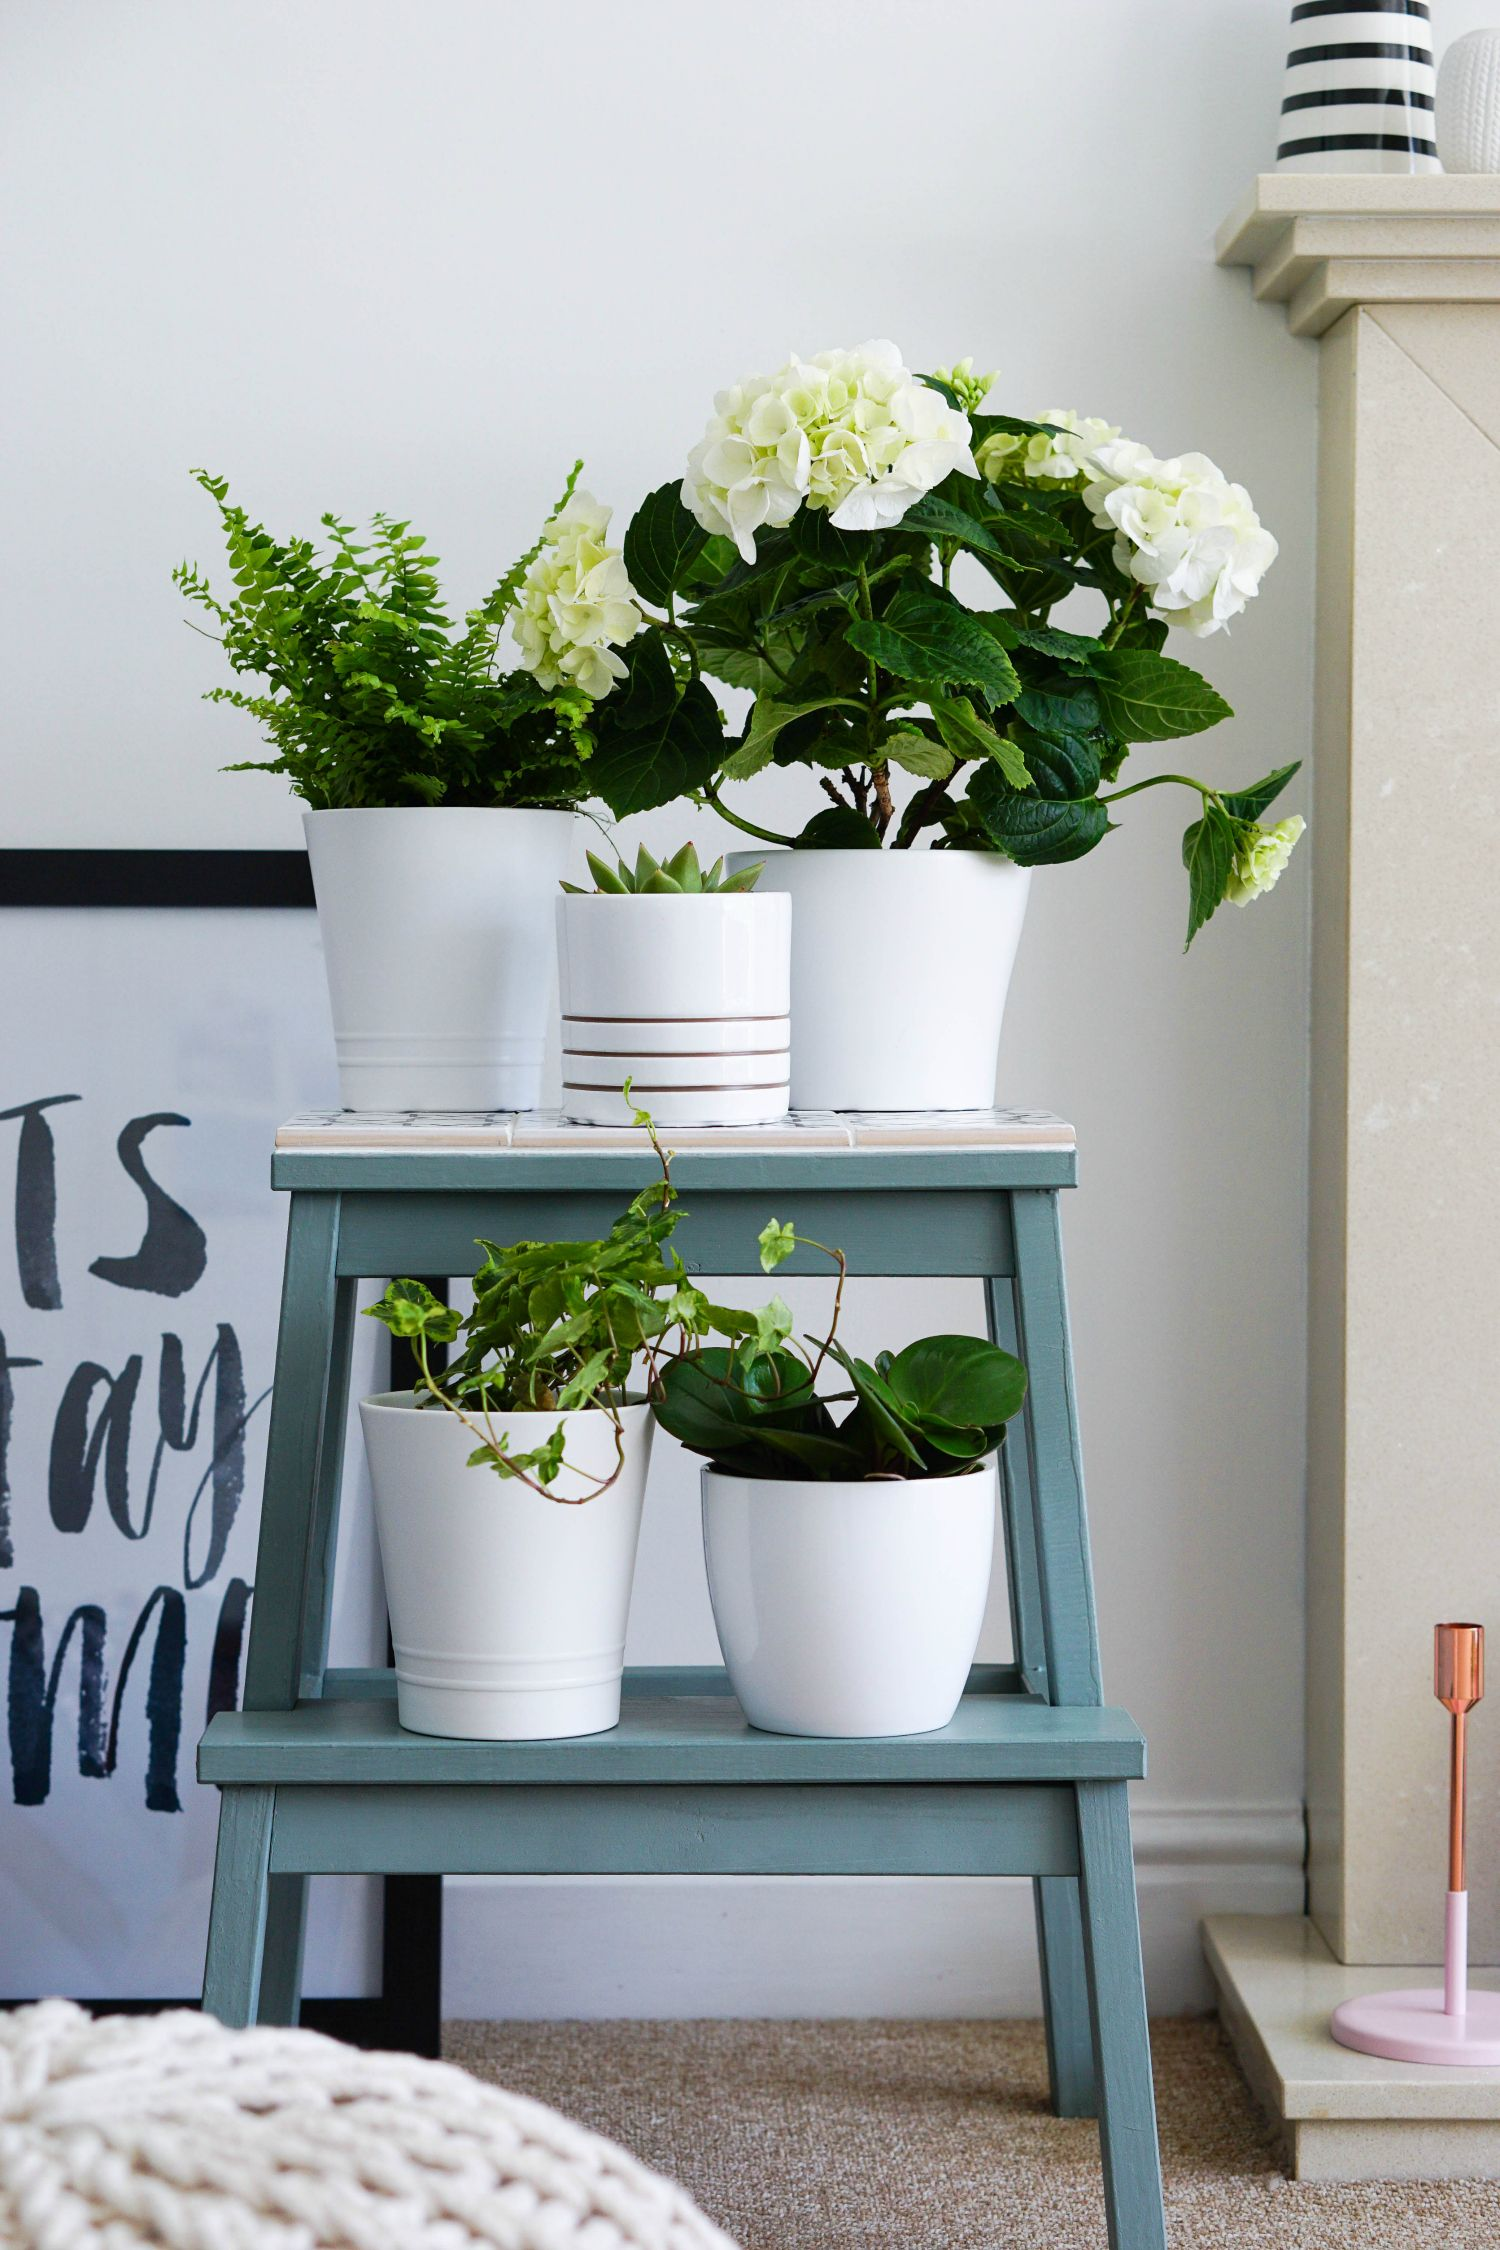 Ikea Hack From Simple BekvÄm Step Stool To Pretty Perfect Plant Stand